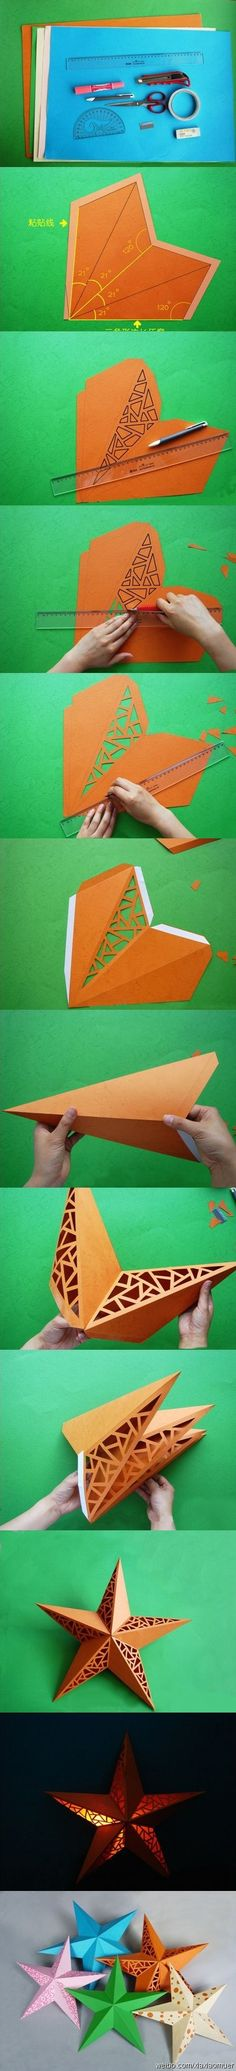 DIY: how to make your own paper stars and paper star lanterns! Cute Crafts, Crafts To Do, Arts And Crafts, Diy Crafts, Decor Crafts, Kirigami, Diy Projects To Try, Craft Projects, Craft Ideas